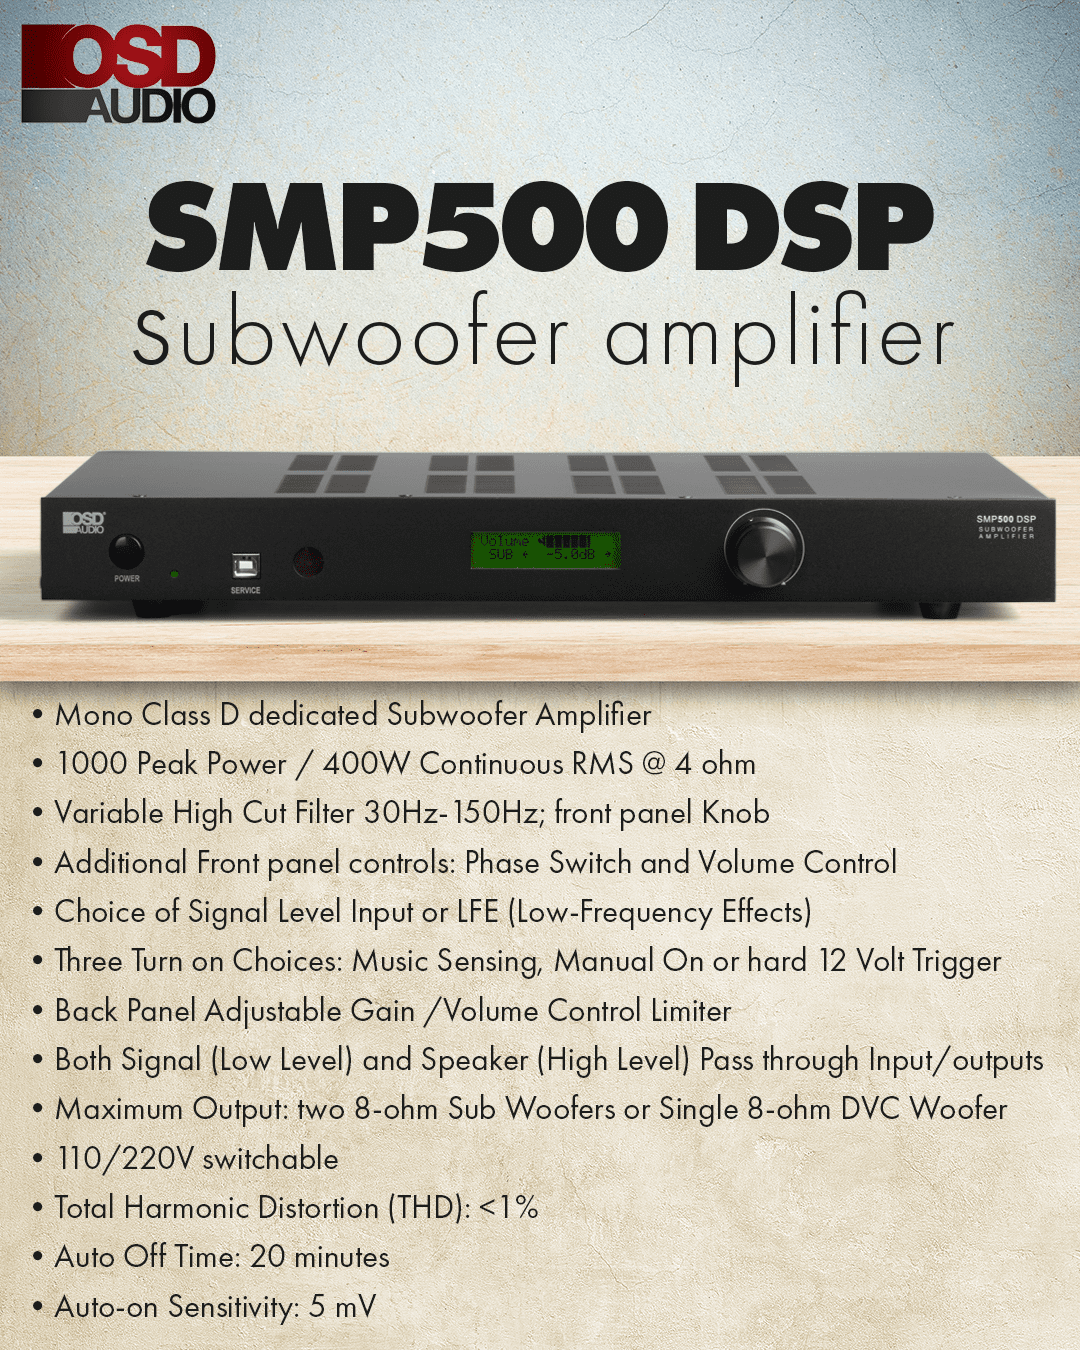 OSD Audio SMP500 DSP Mono-Channel Class D Subwoofer